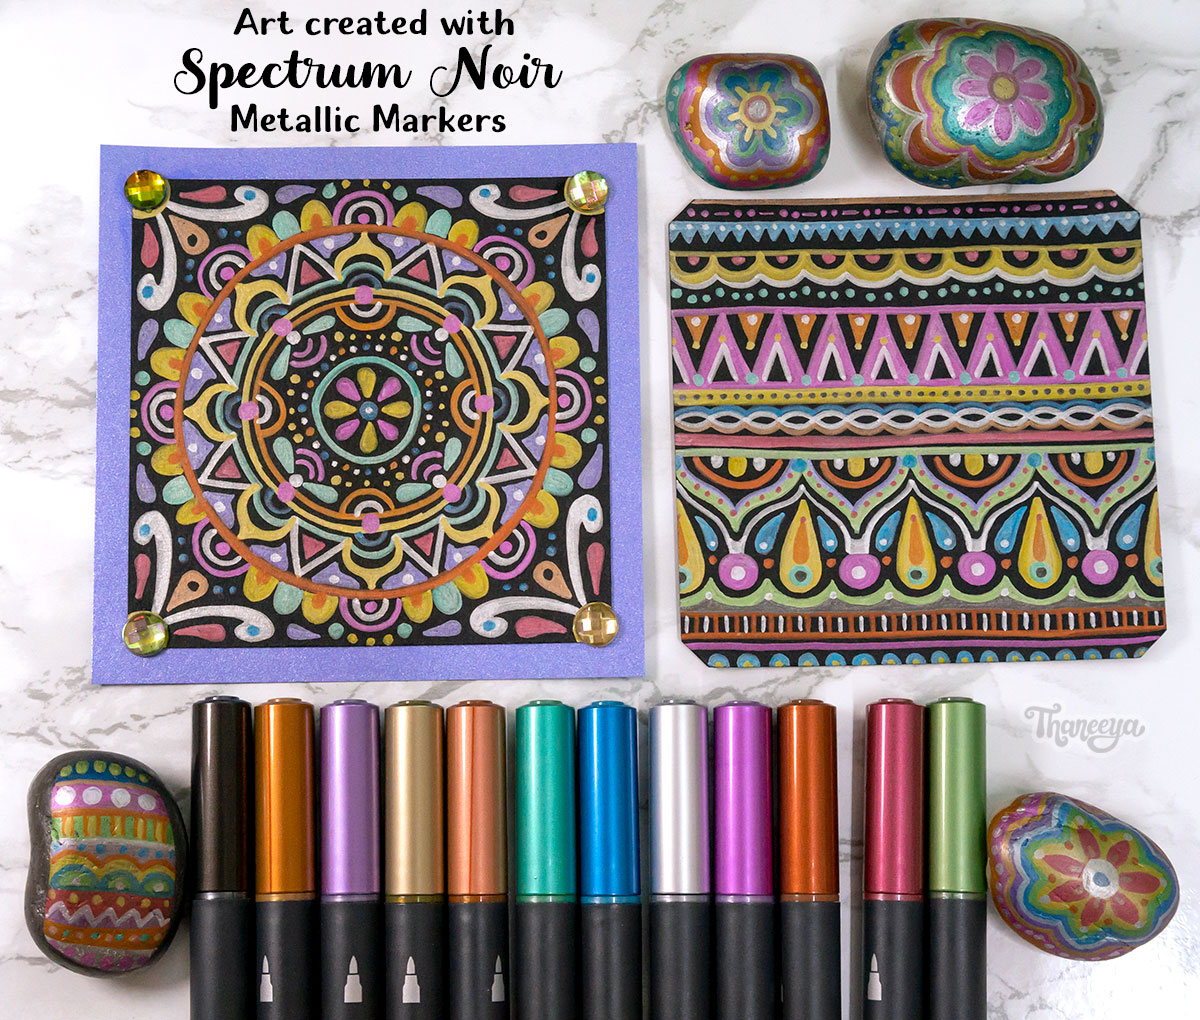 Spectrum Noir Metallic Markers - Art by Thaneeya McArdle